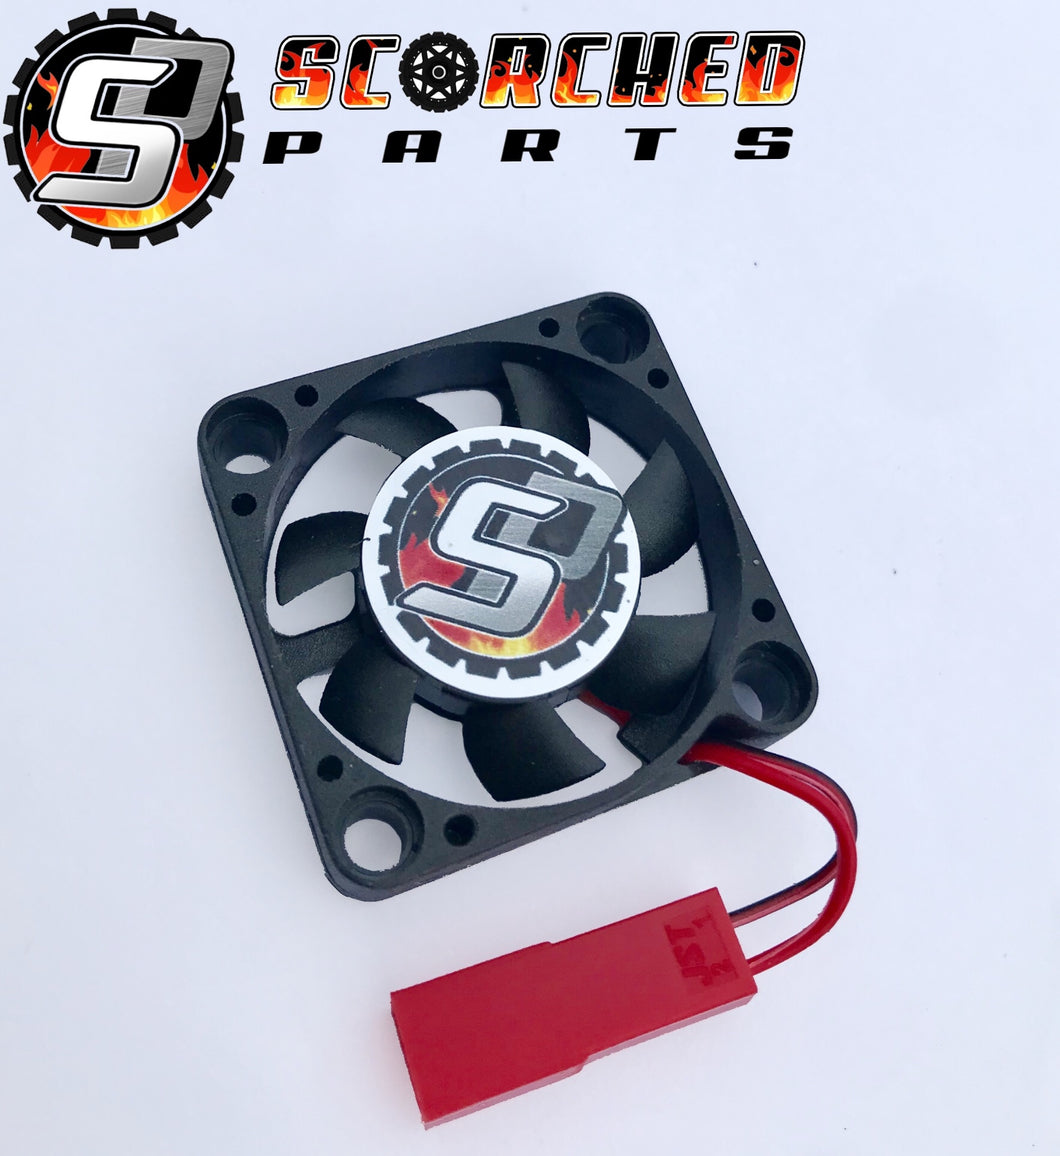 Traxxas Velineon VXL 3s ESC Replacement cooling Fan - Slash, Rustler, Bandit